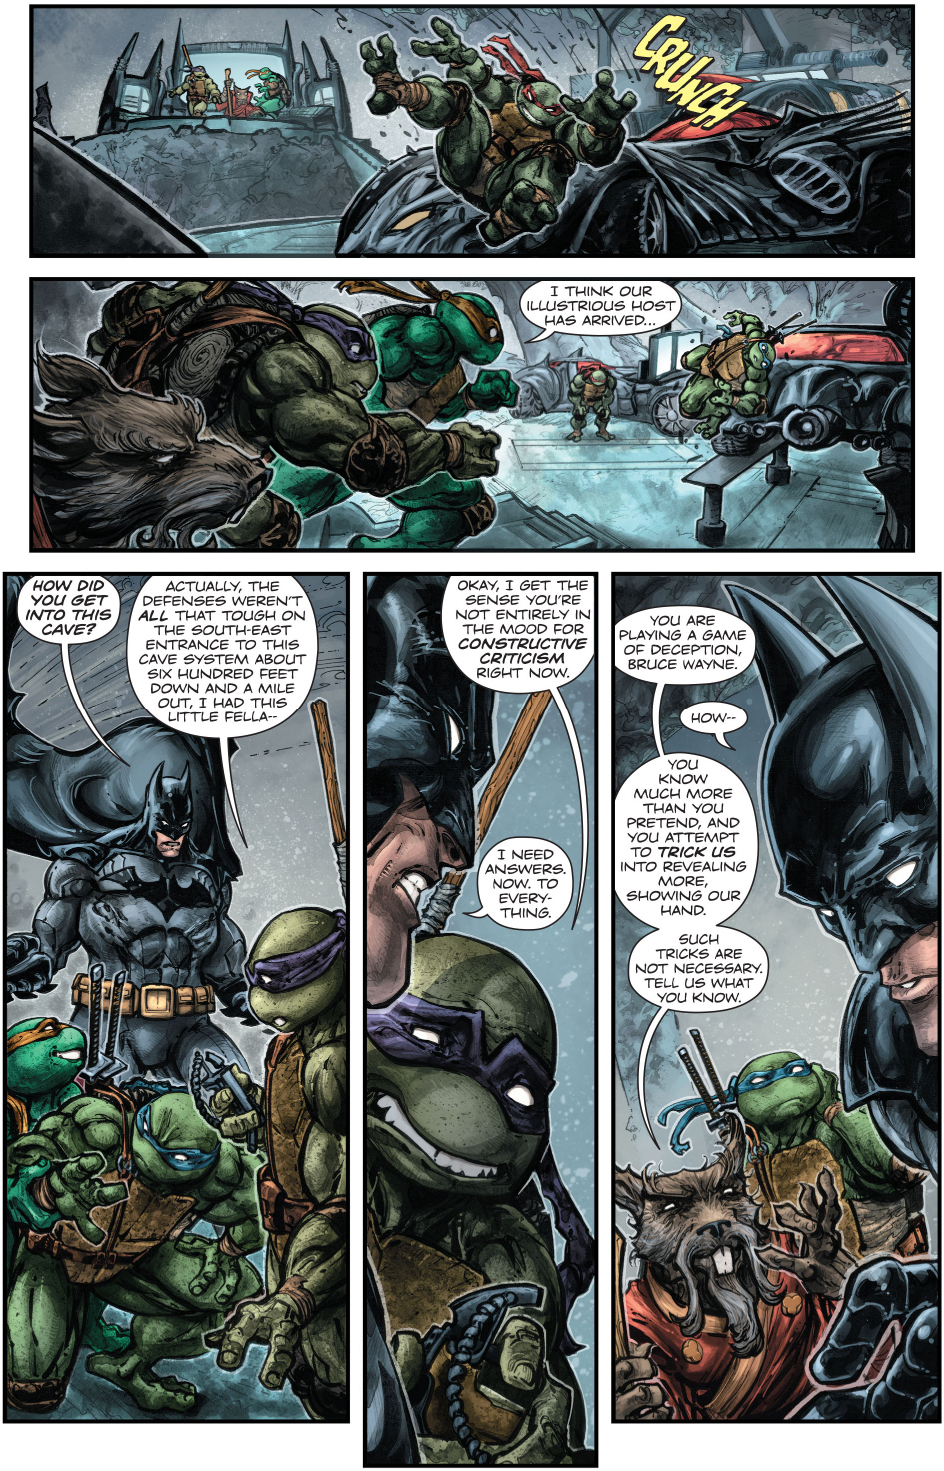 teenage mutant ninja turtles in the batcave